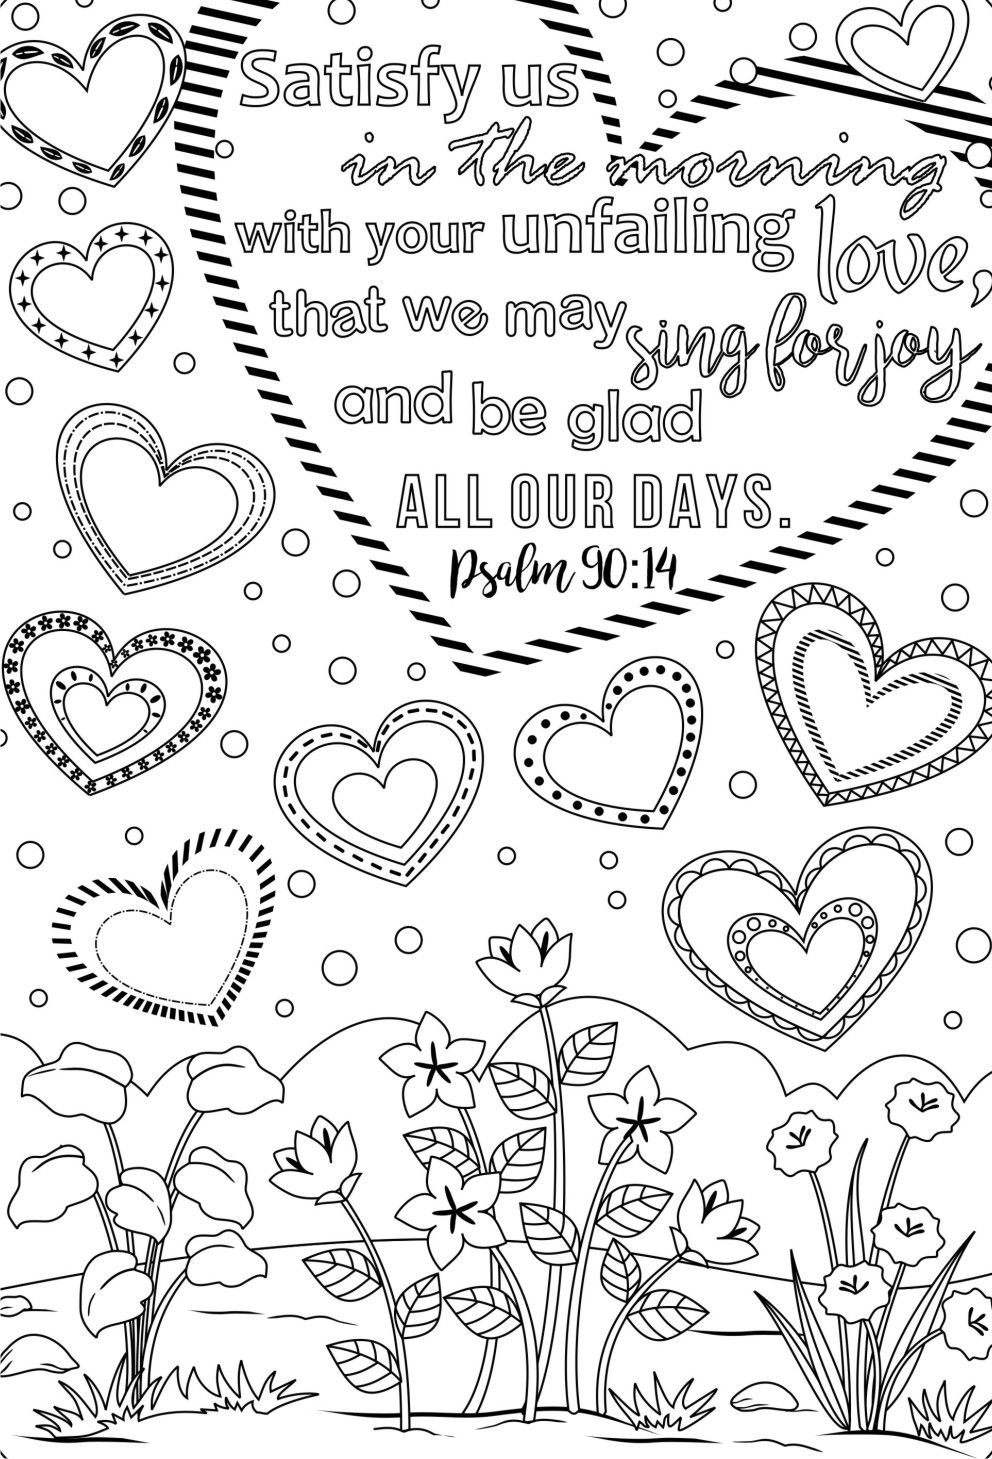 bible coloring pages for adults - HD 992×1459